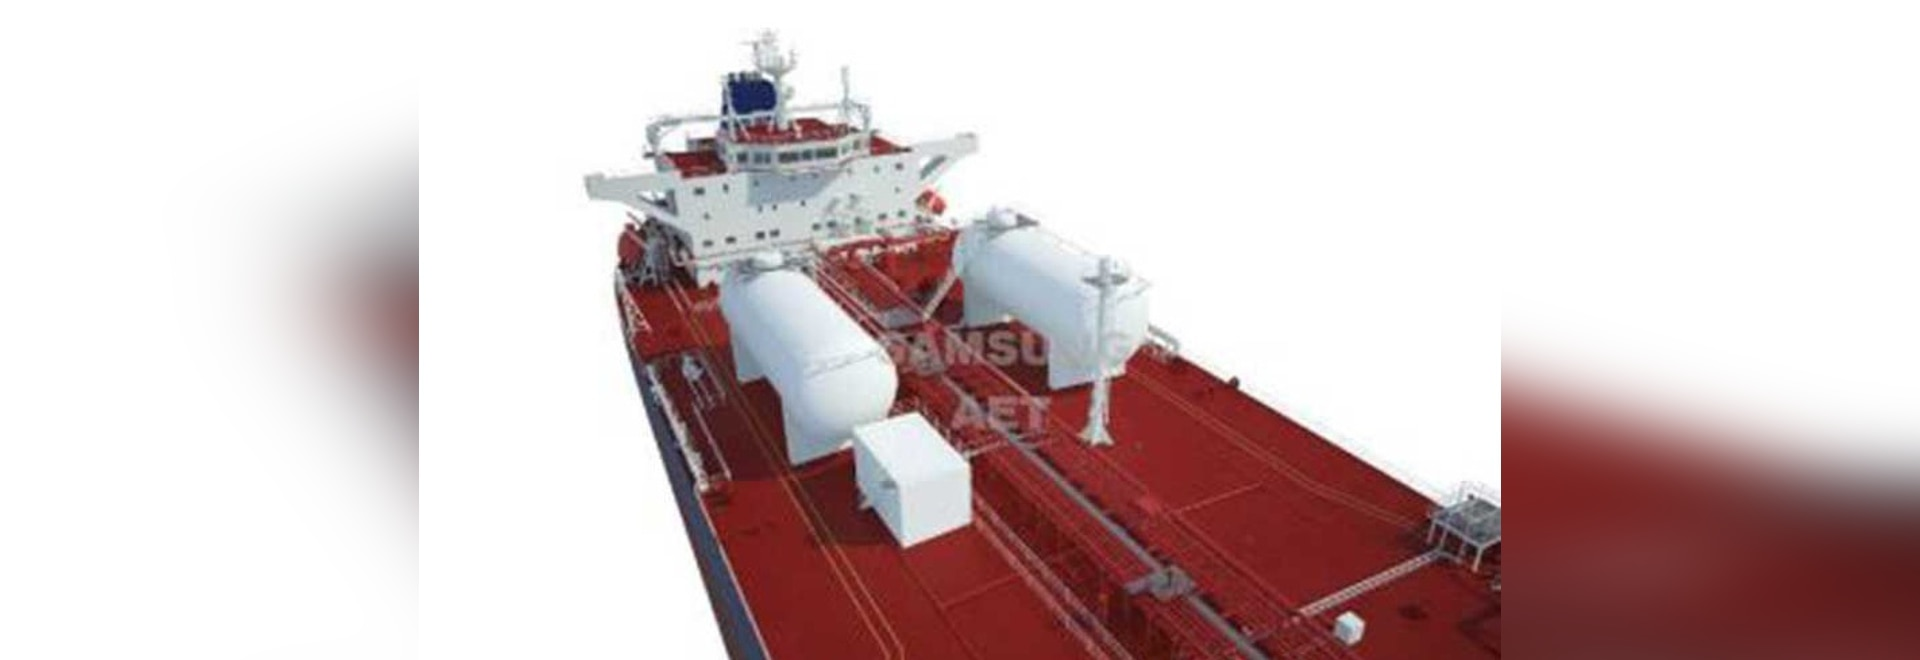 Fitted with twin LNG tanks, the vessels will have the ability to trade on LNG fuel for about a month before refueling